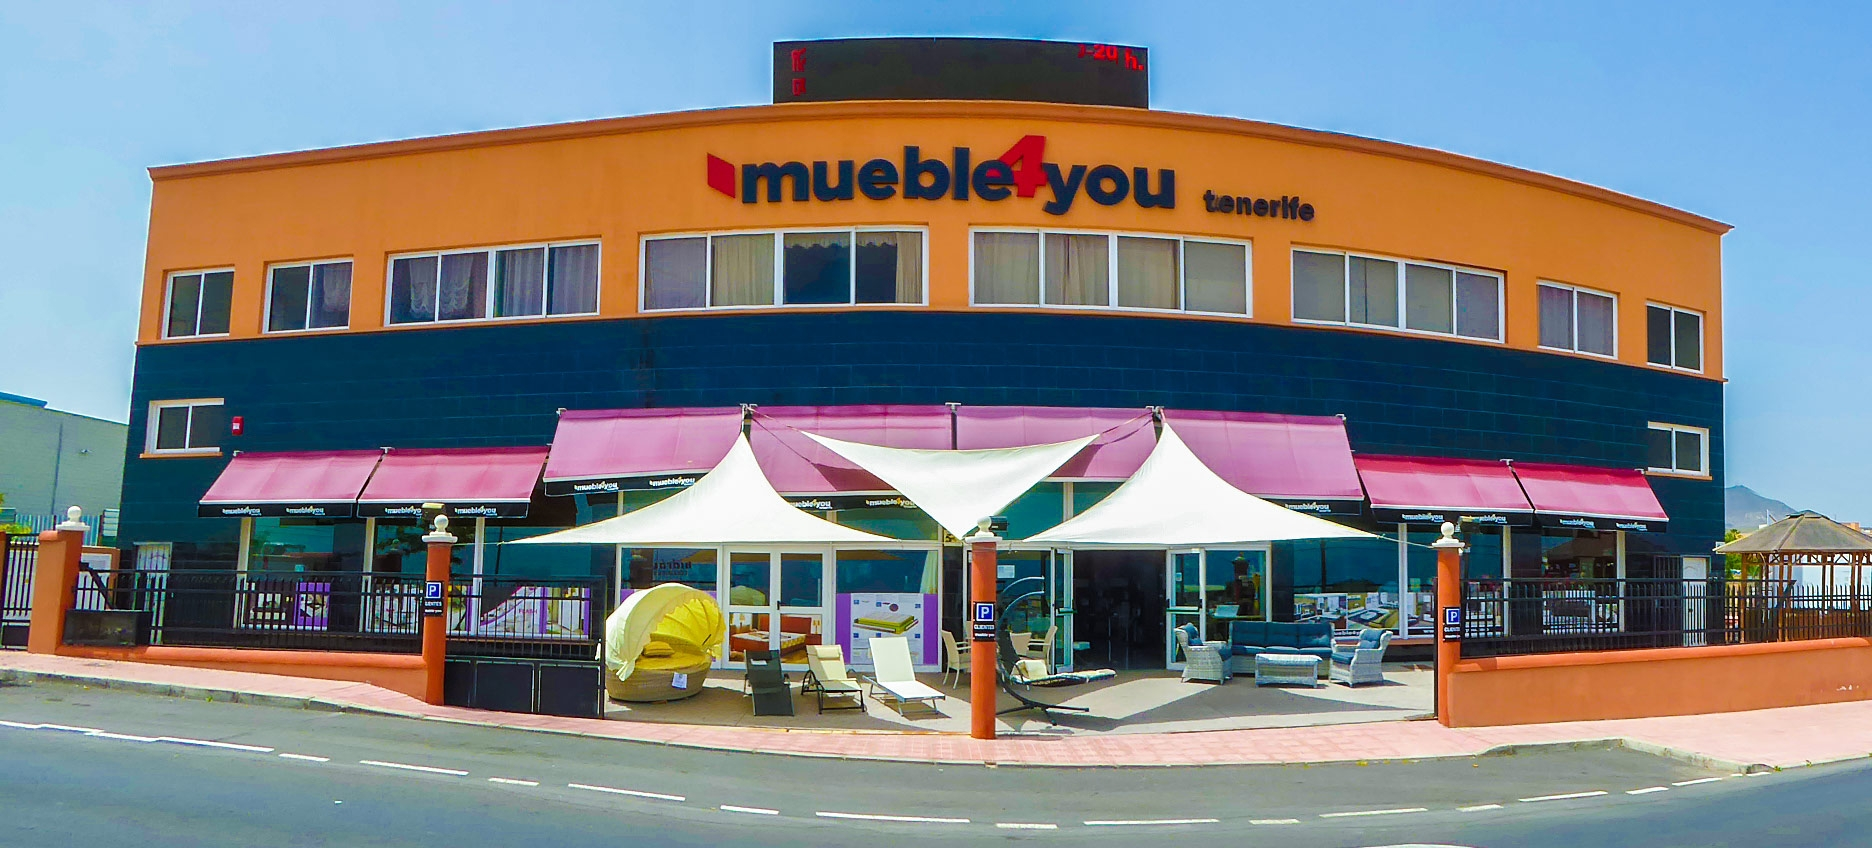 Mueble4you in tenerife my destination tenerife - Sofas tenerife ...